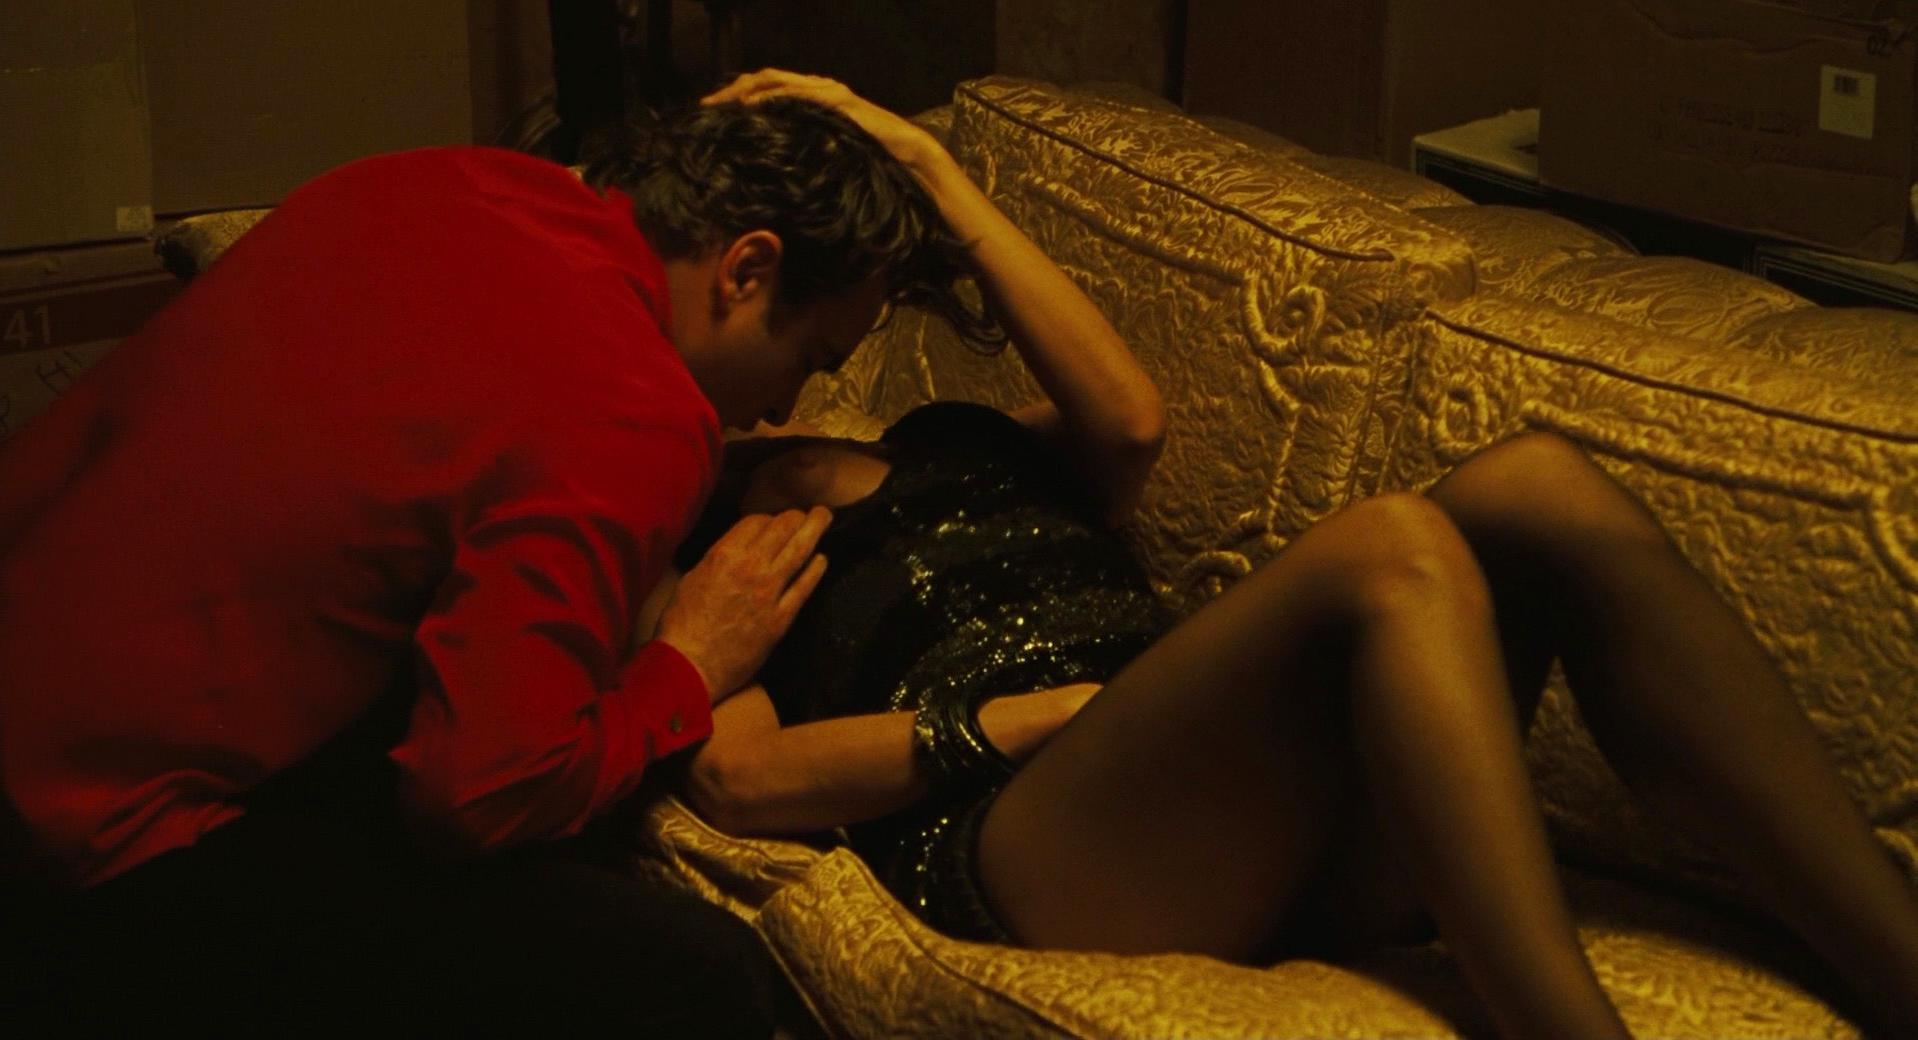 Sex scene from we own the night